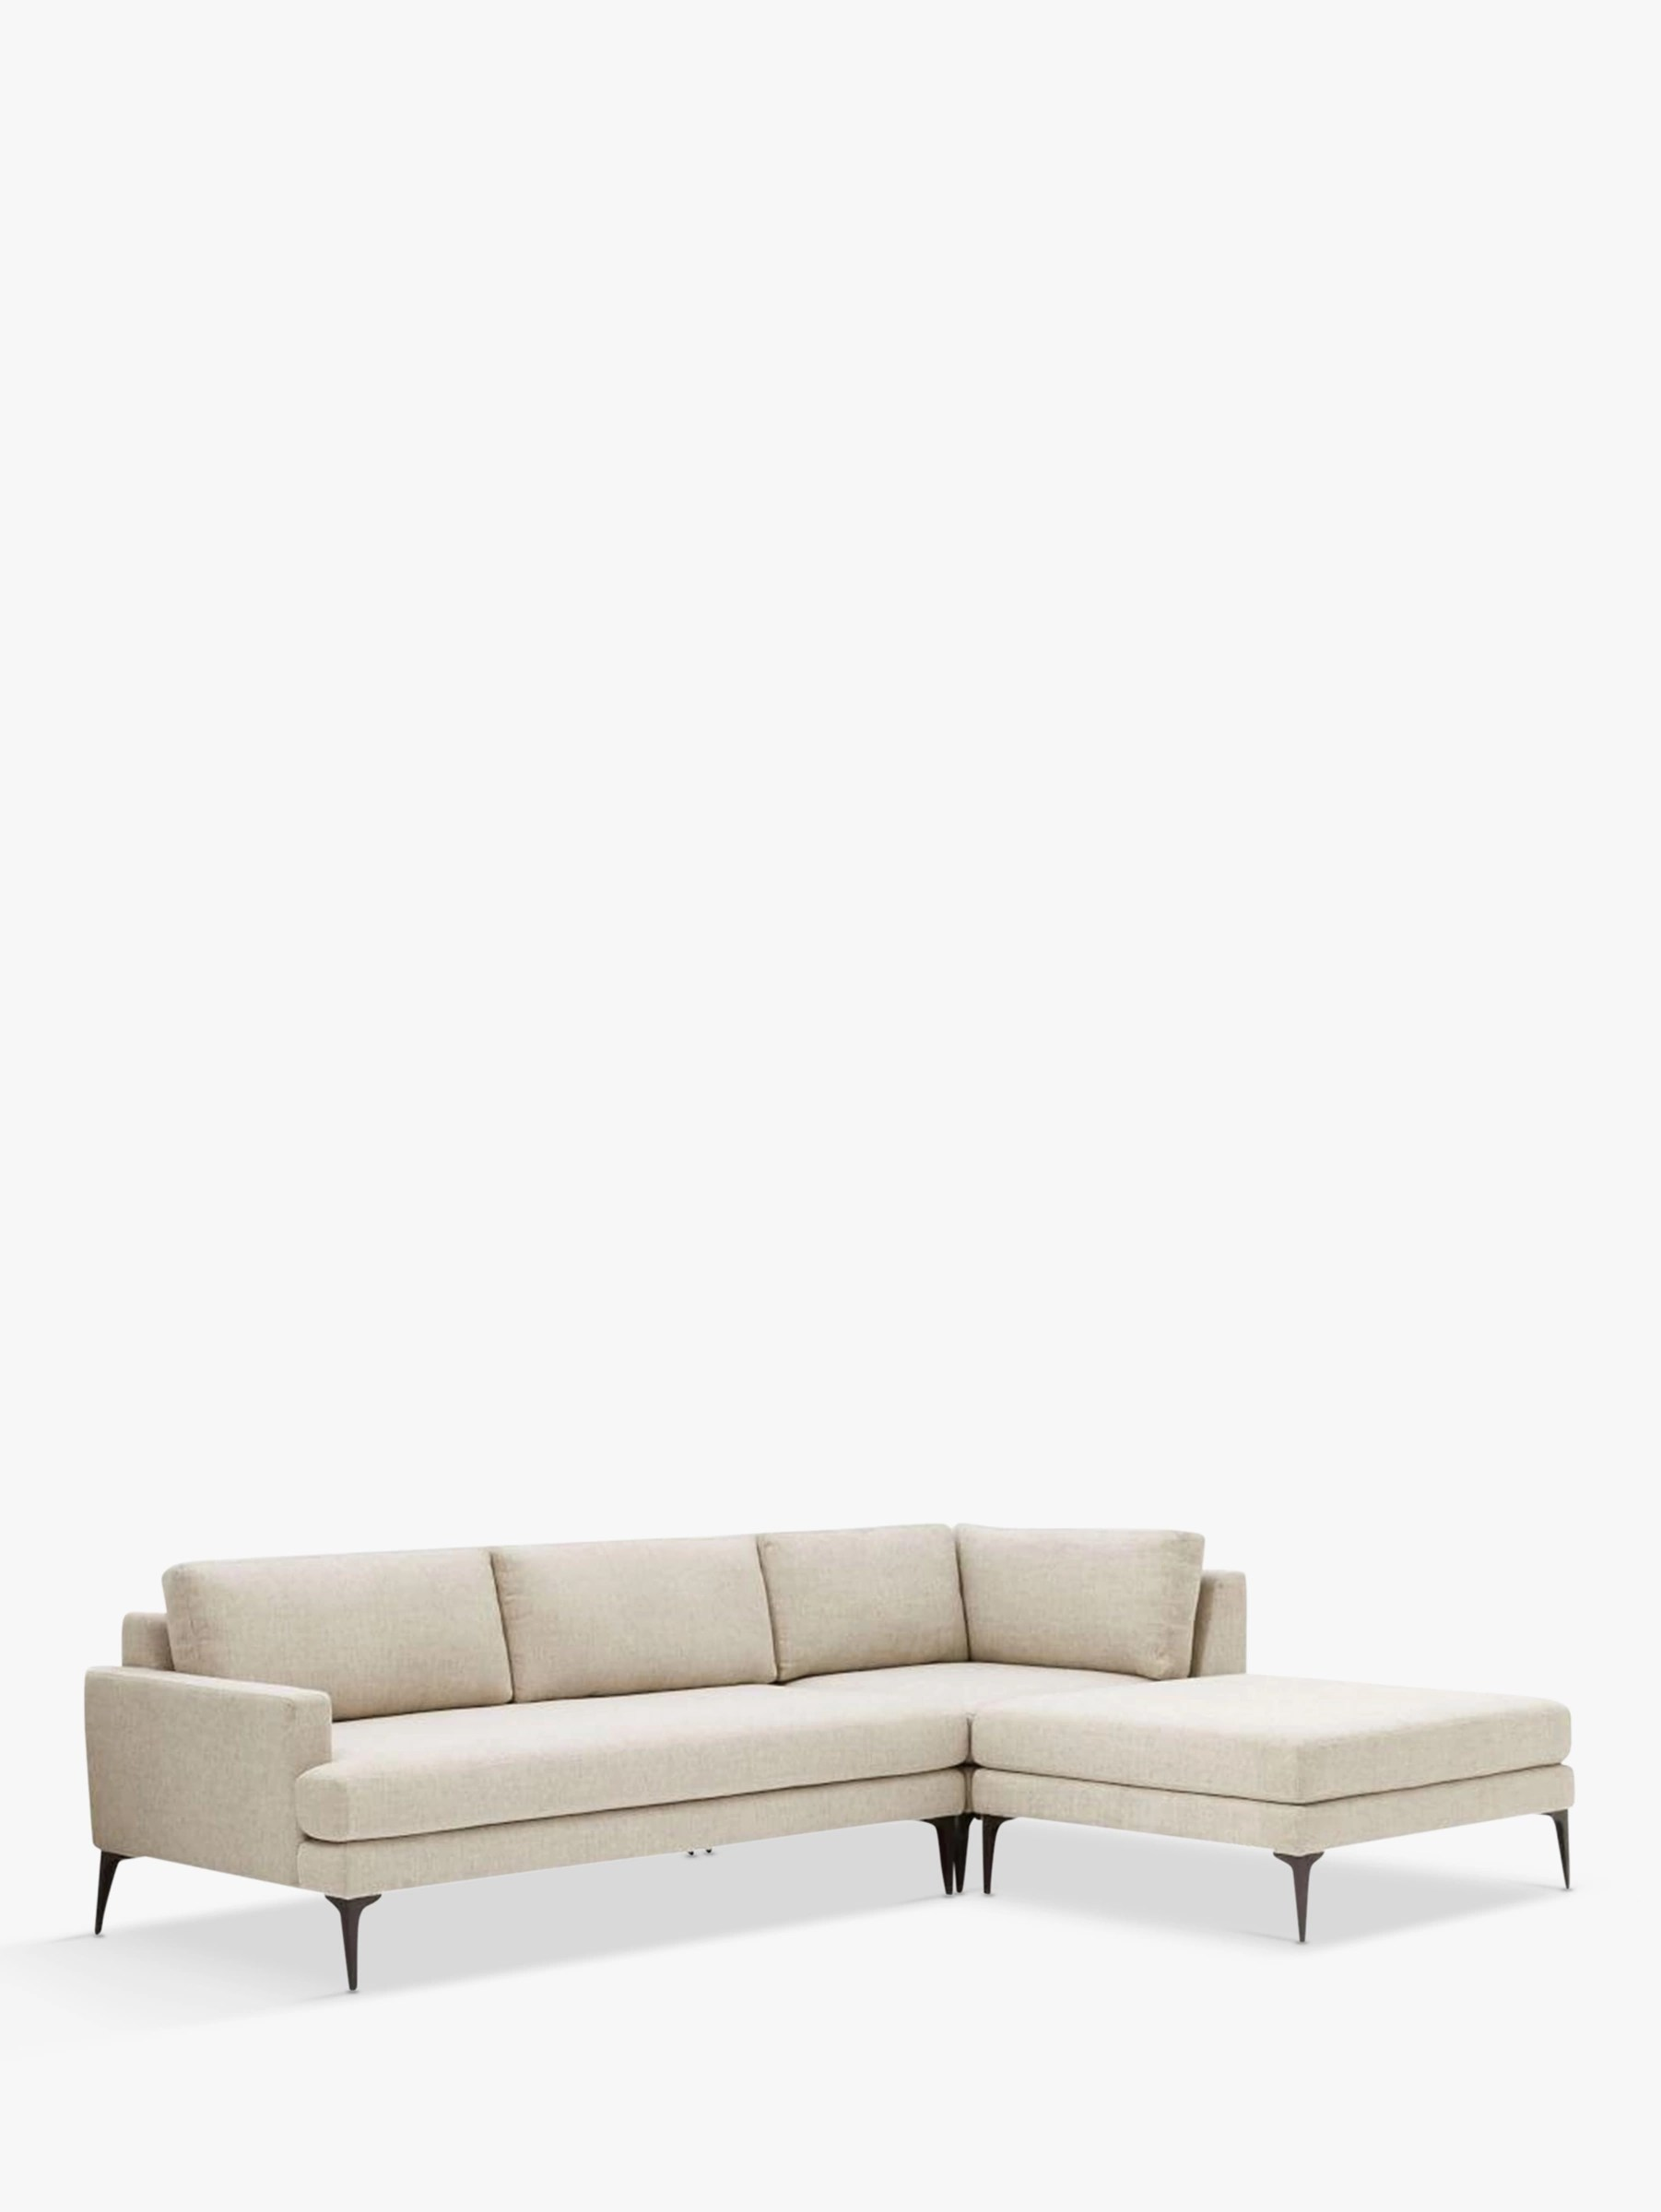 Big Sofa Occasion West Elm Andes Large 3 Seater Rhf Sectional Sofa At John Lewis